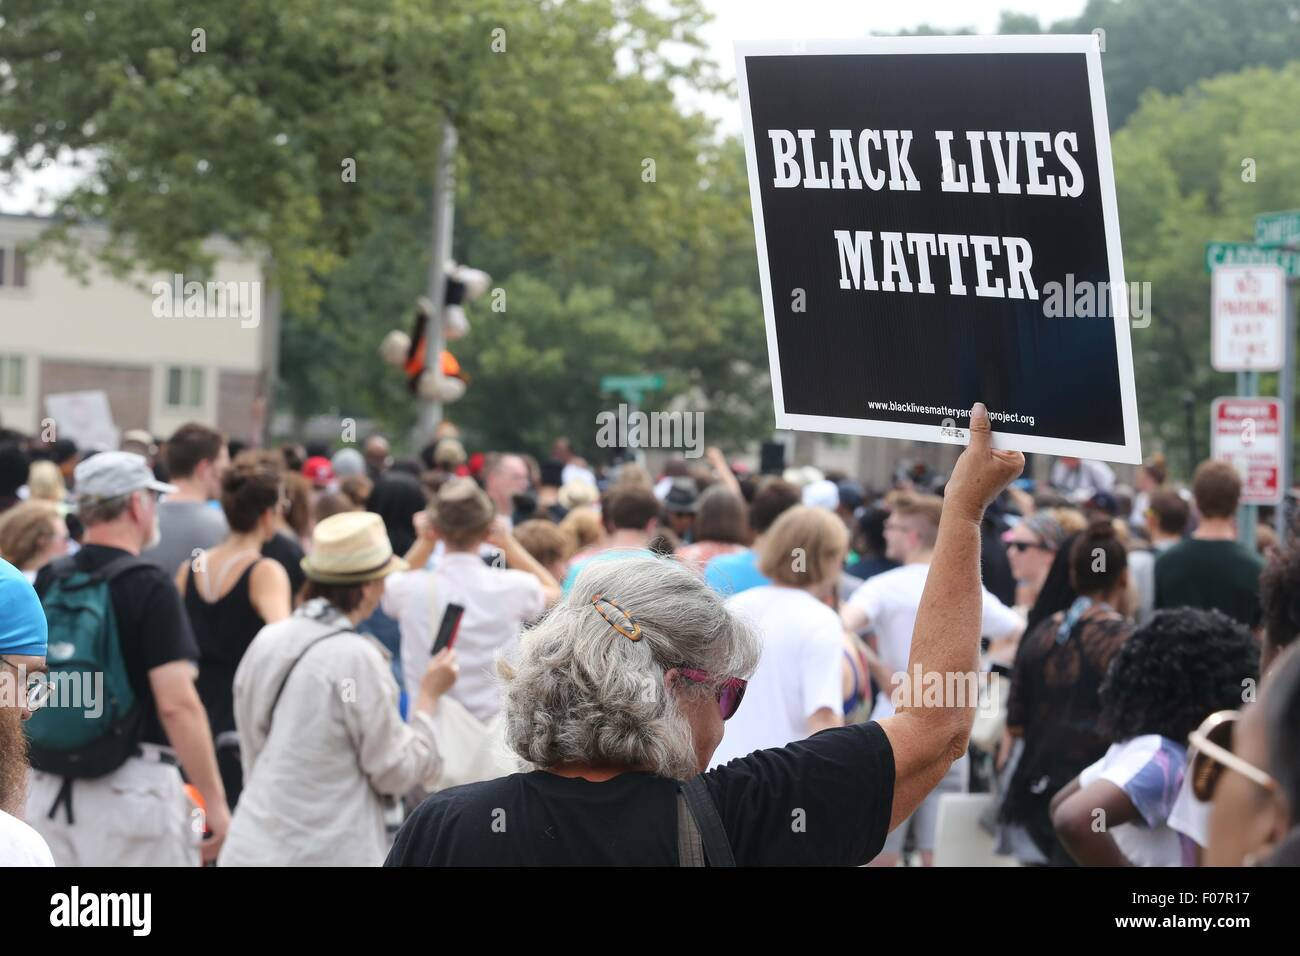 Ferguson, Missouri, USA. 9th Aug, 2015. A woman holds up a Black Lives Matter sign at the Michael Brown memorial - Stock Image